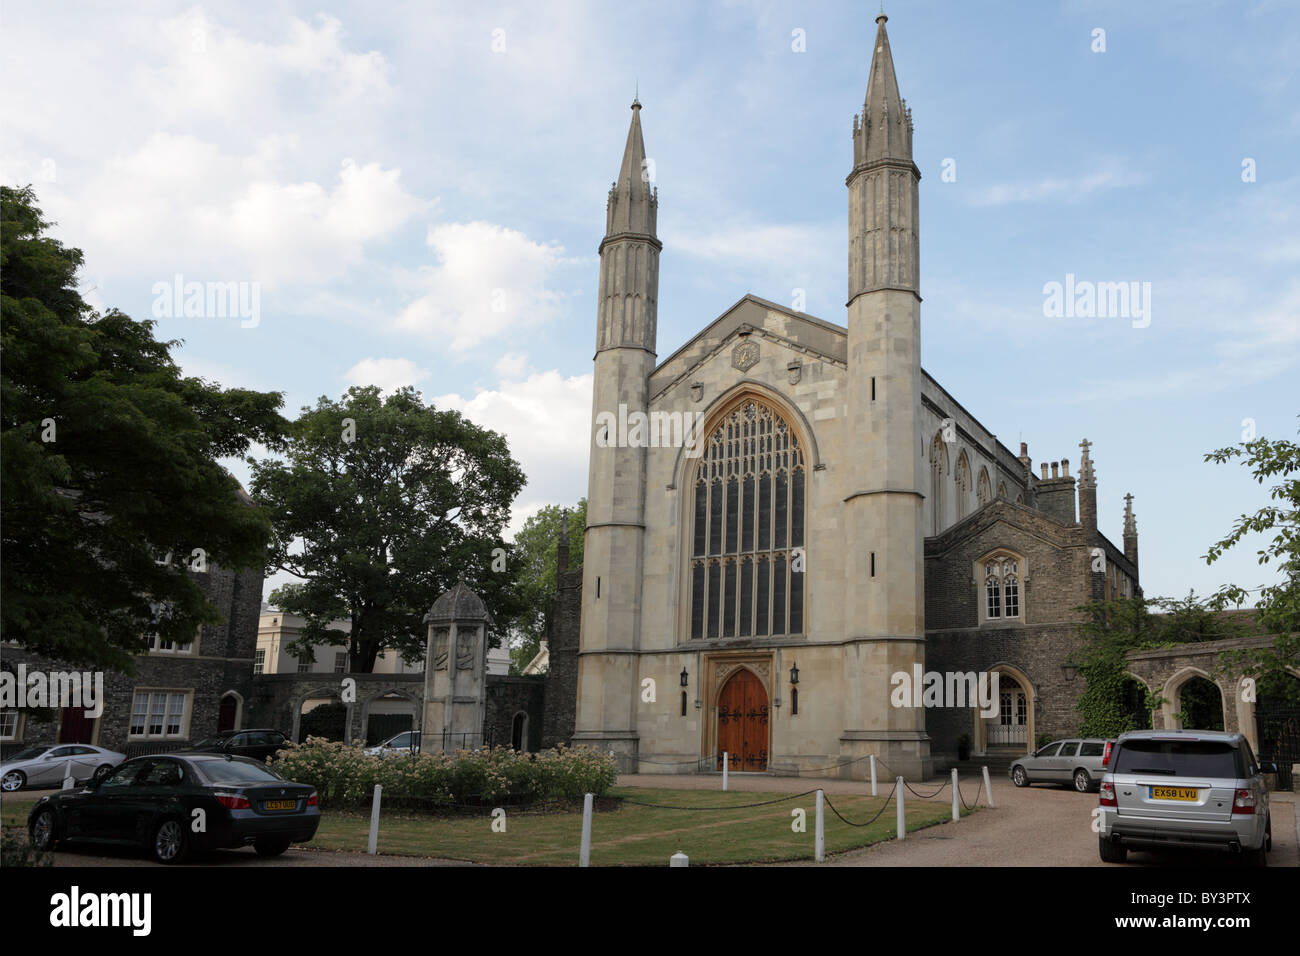 St Katharines Church in Outer Circle, Regents Park, London. - Stock Image